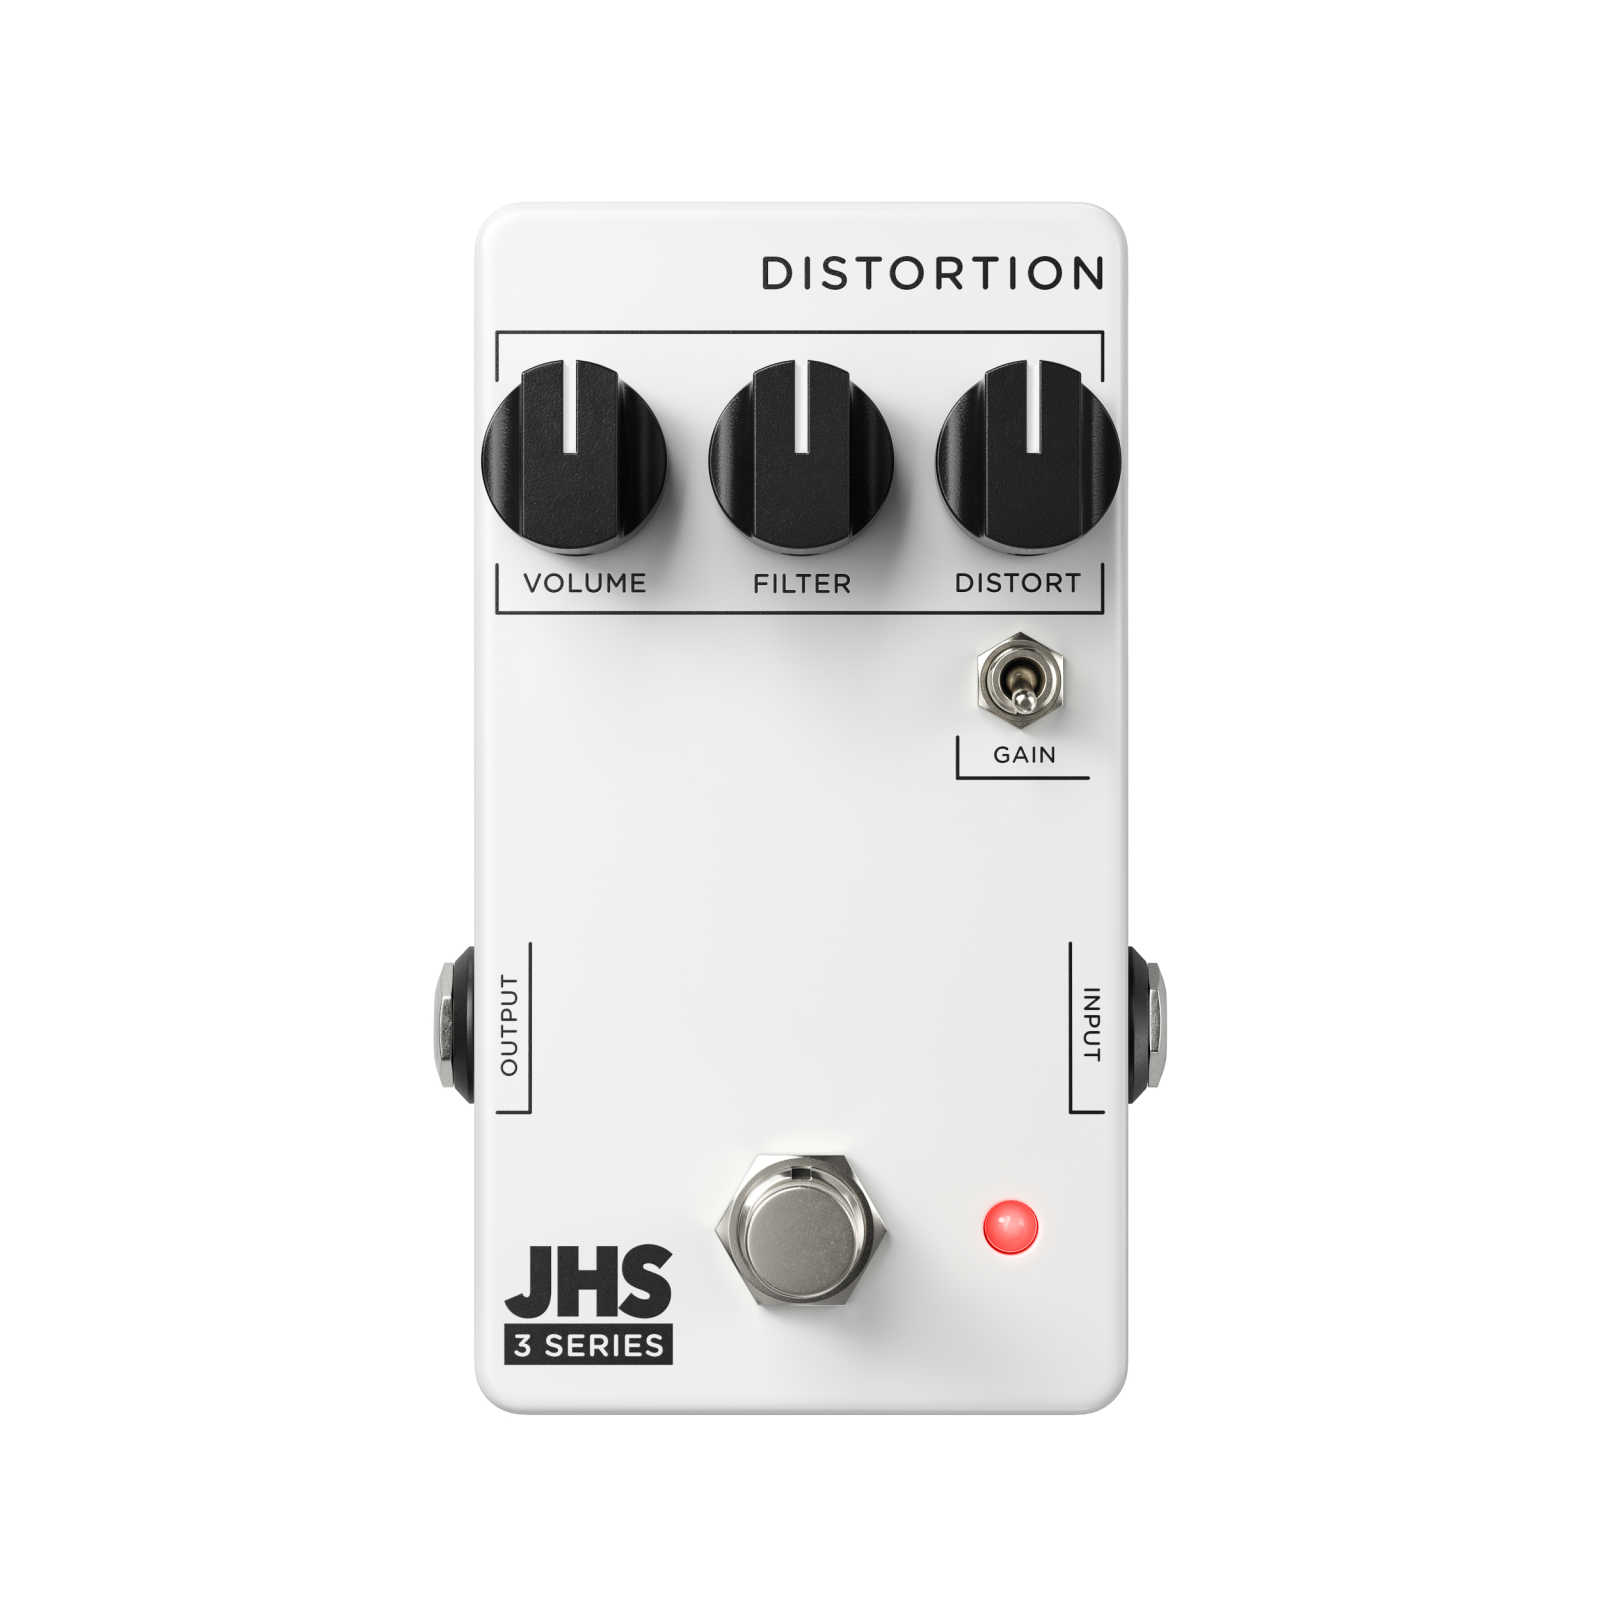 JHS 3 Series - Distortion